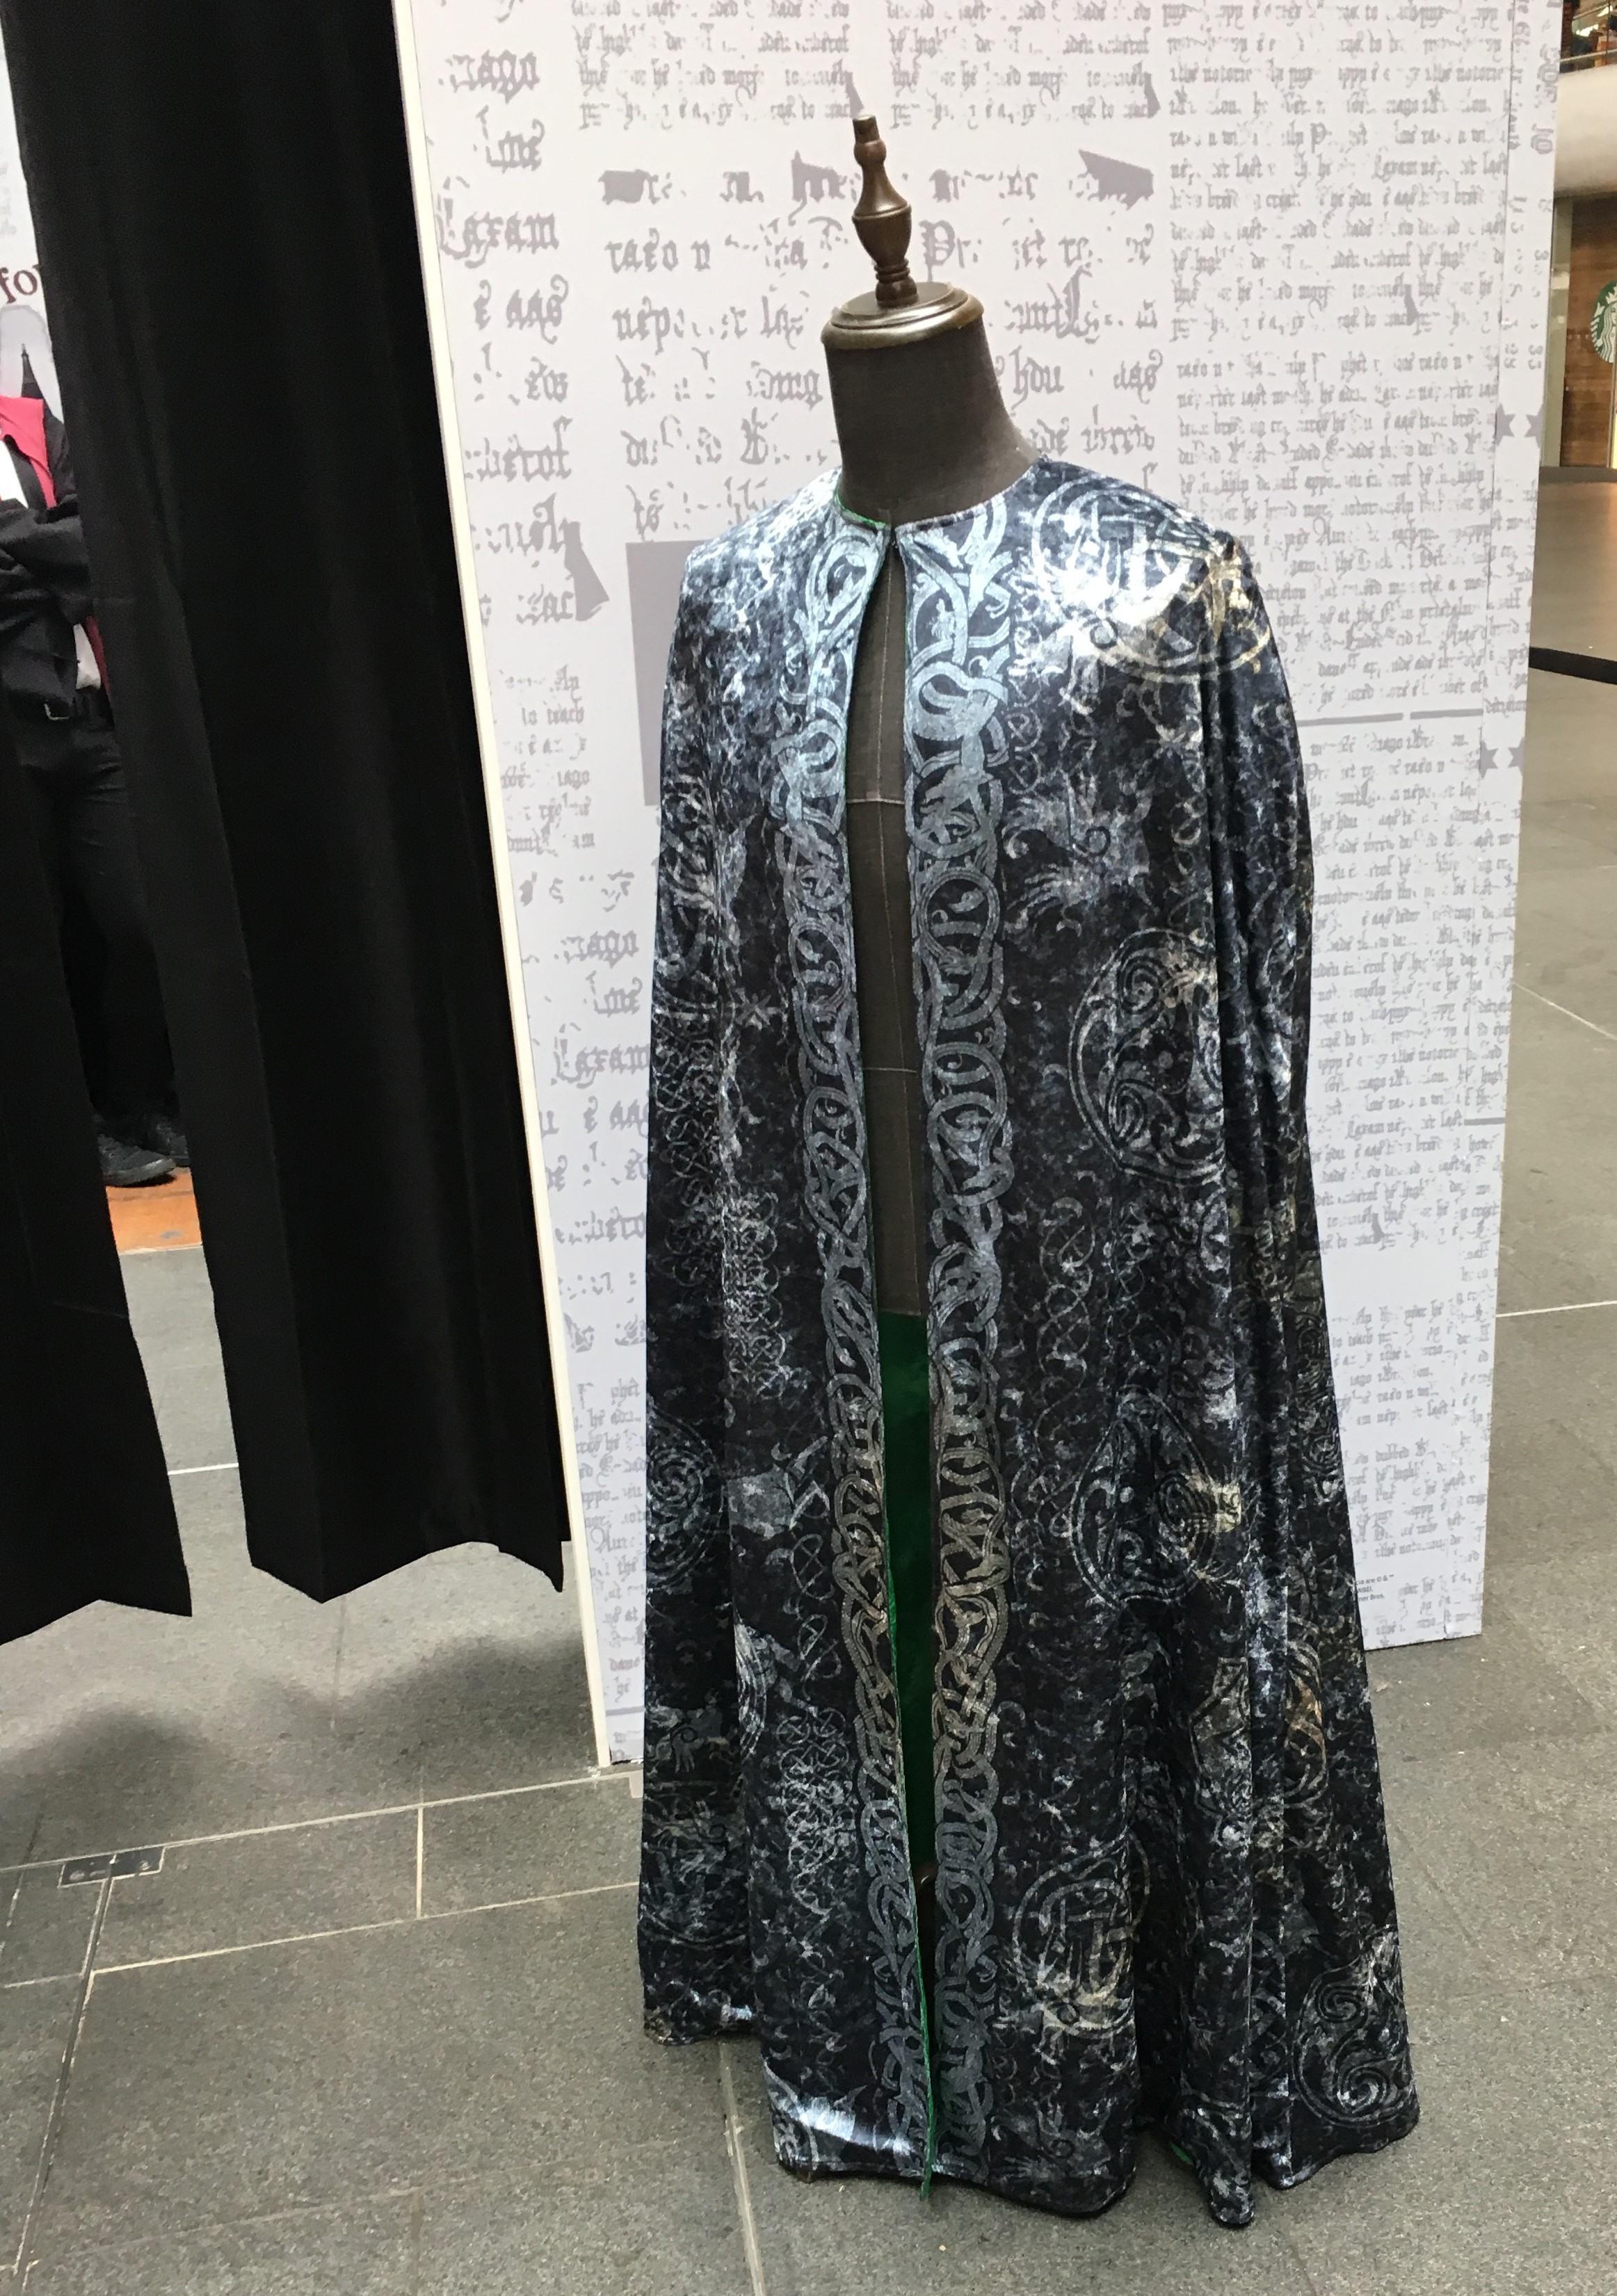 Wow! Stuff invisibility cloak displayed on mannequin at product launch